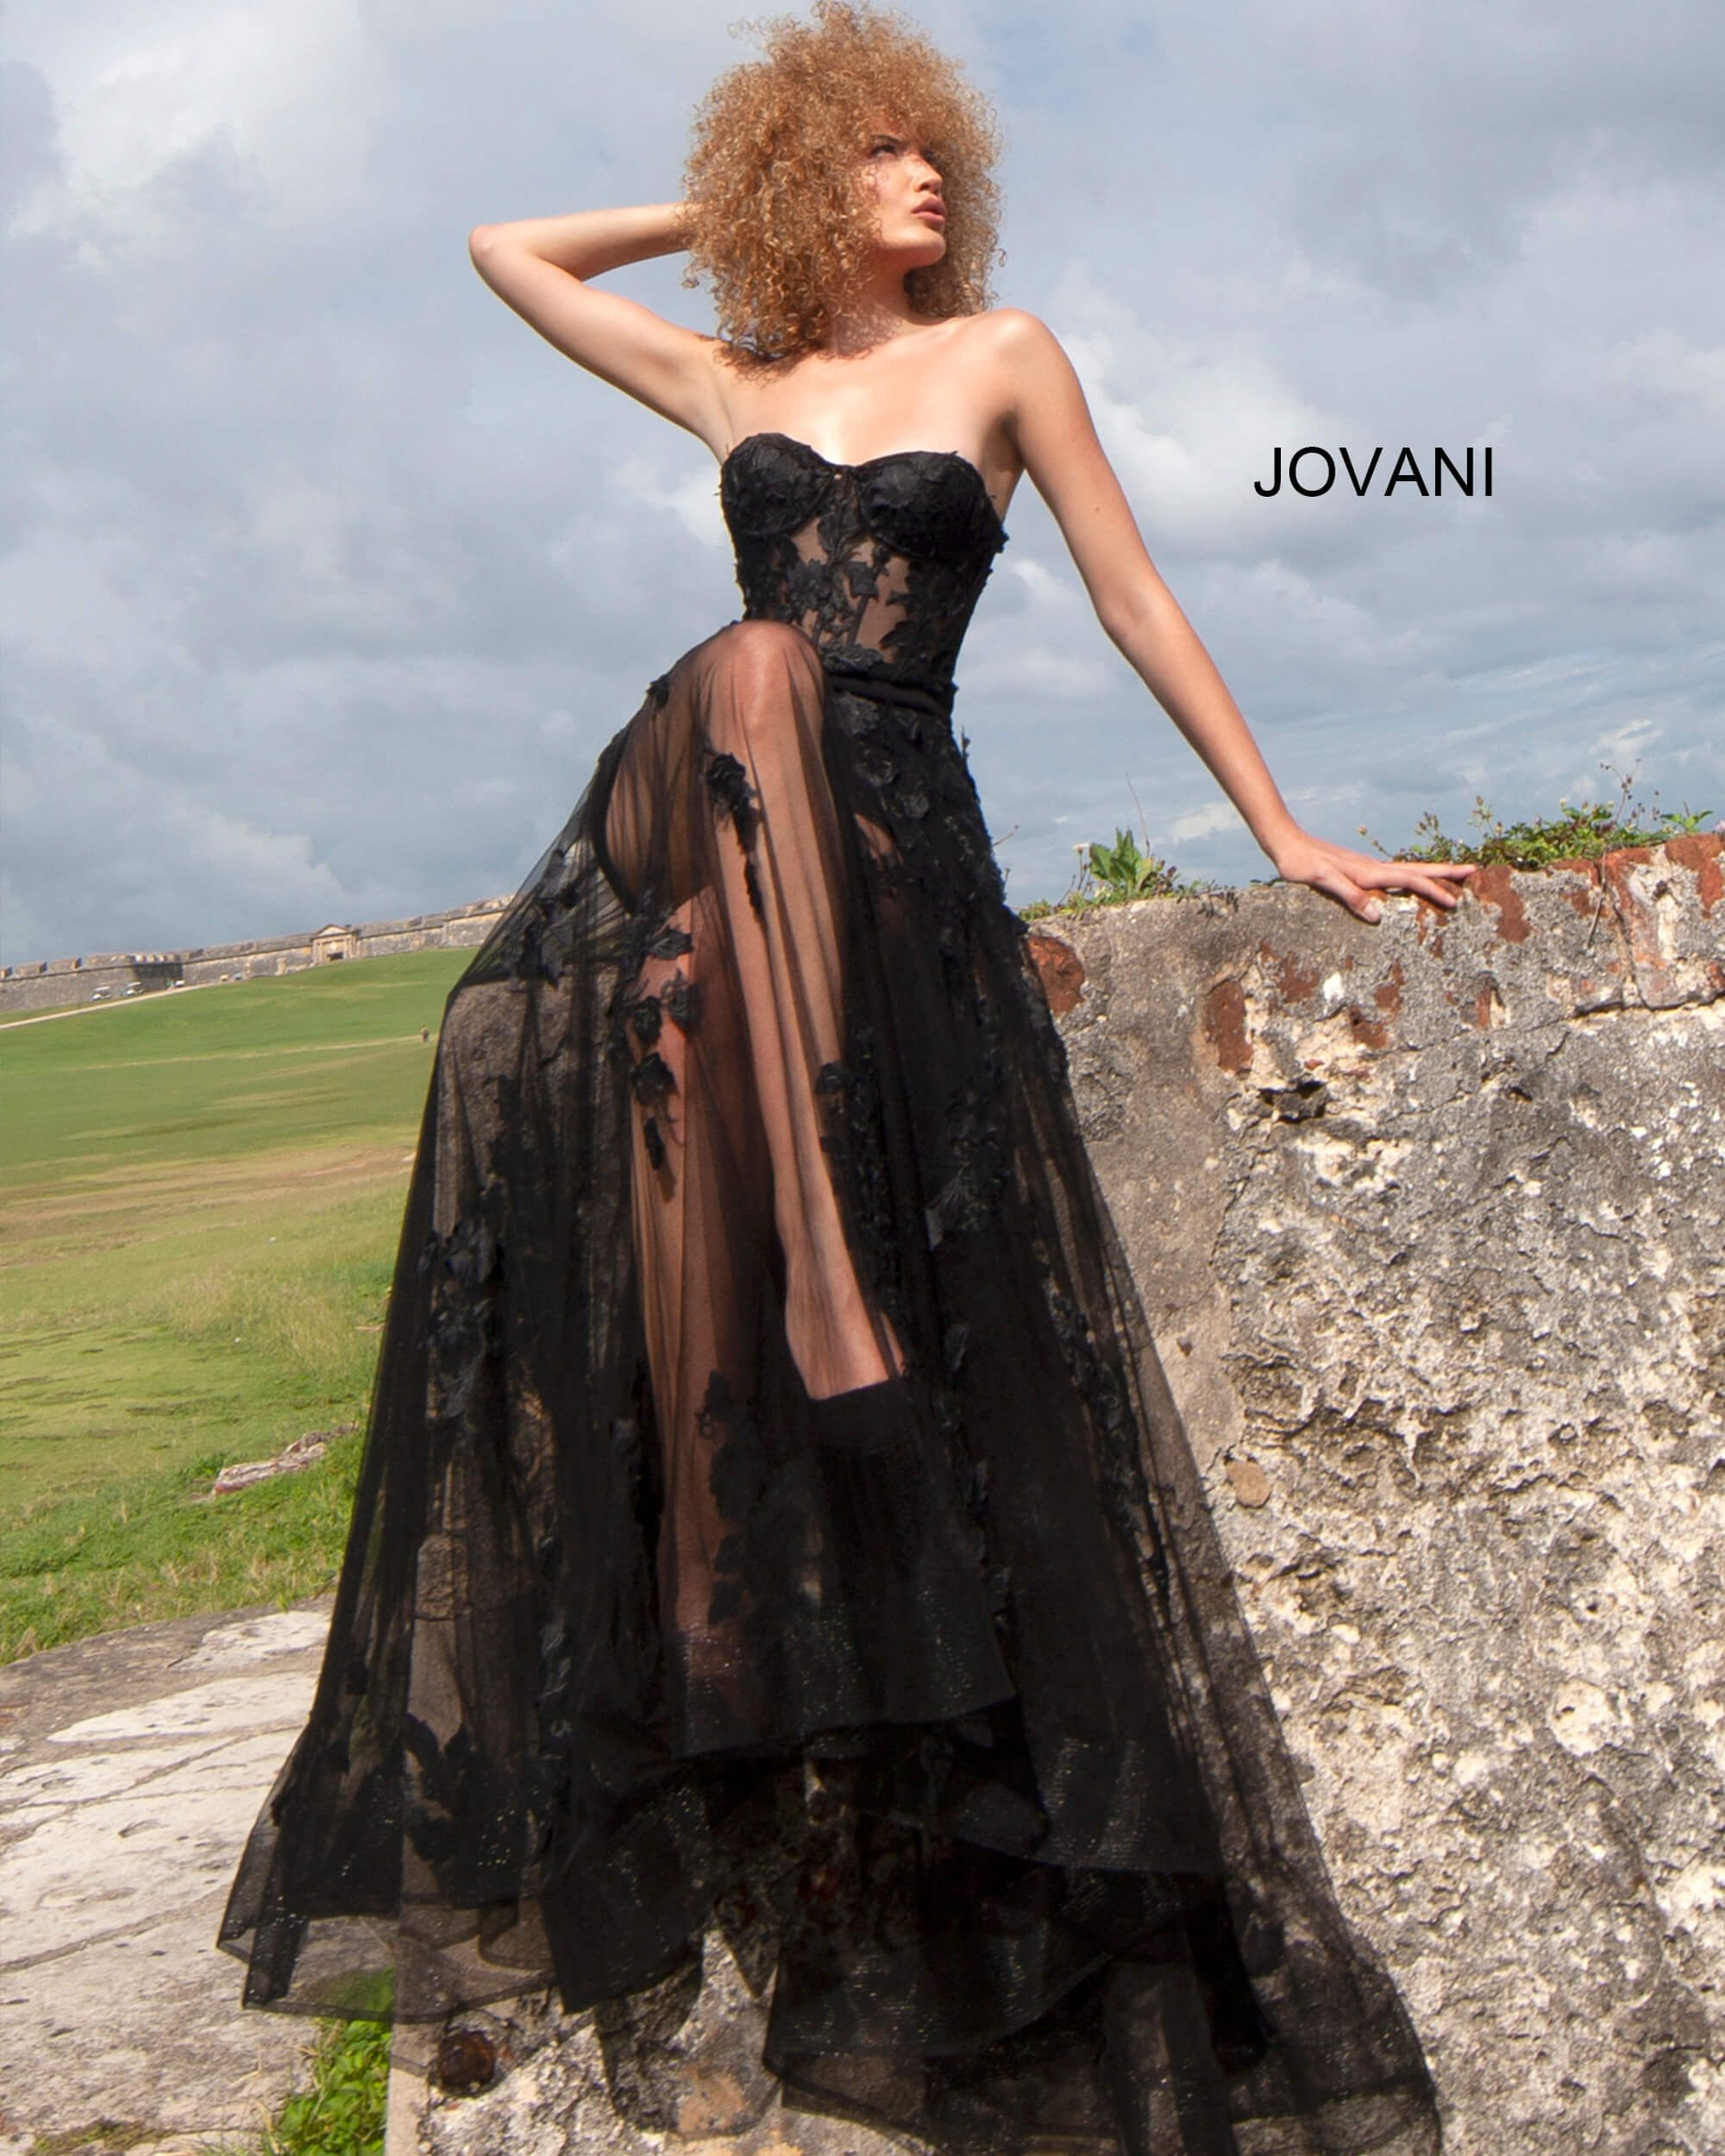 Jovani 02845 Sweetheart Sheer Floral Applique Gown Black Wedding Gowns Dresses Pretty Prom Dresses [ 2500 x 2000 Pixel ]